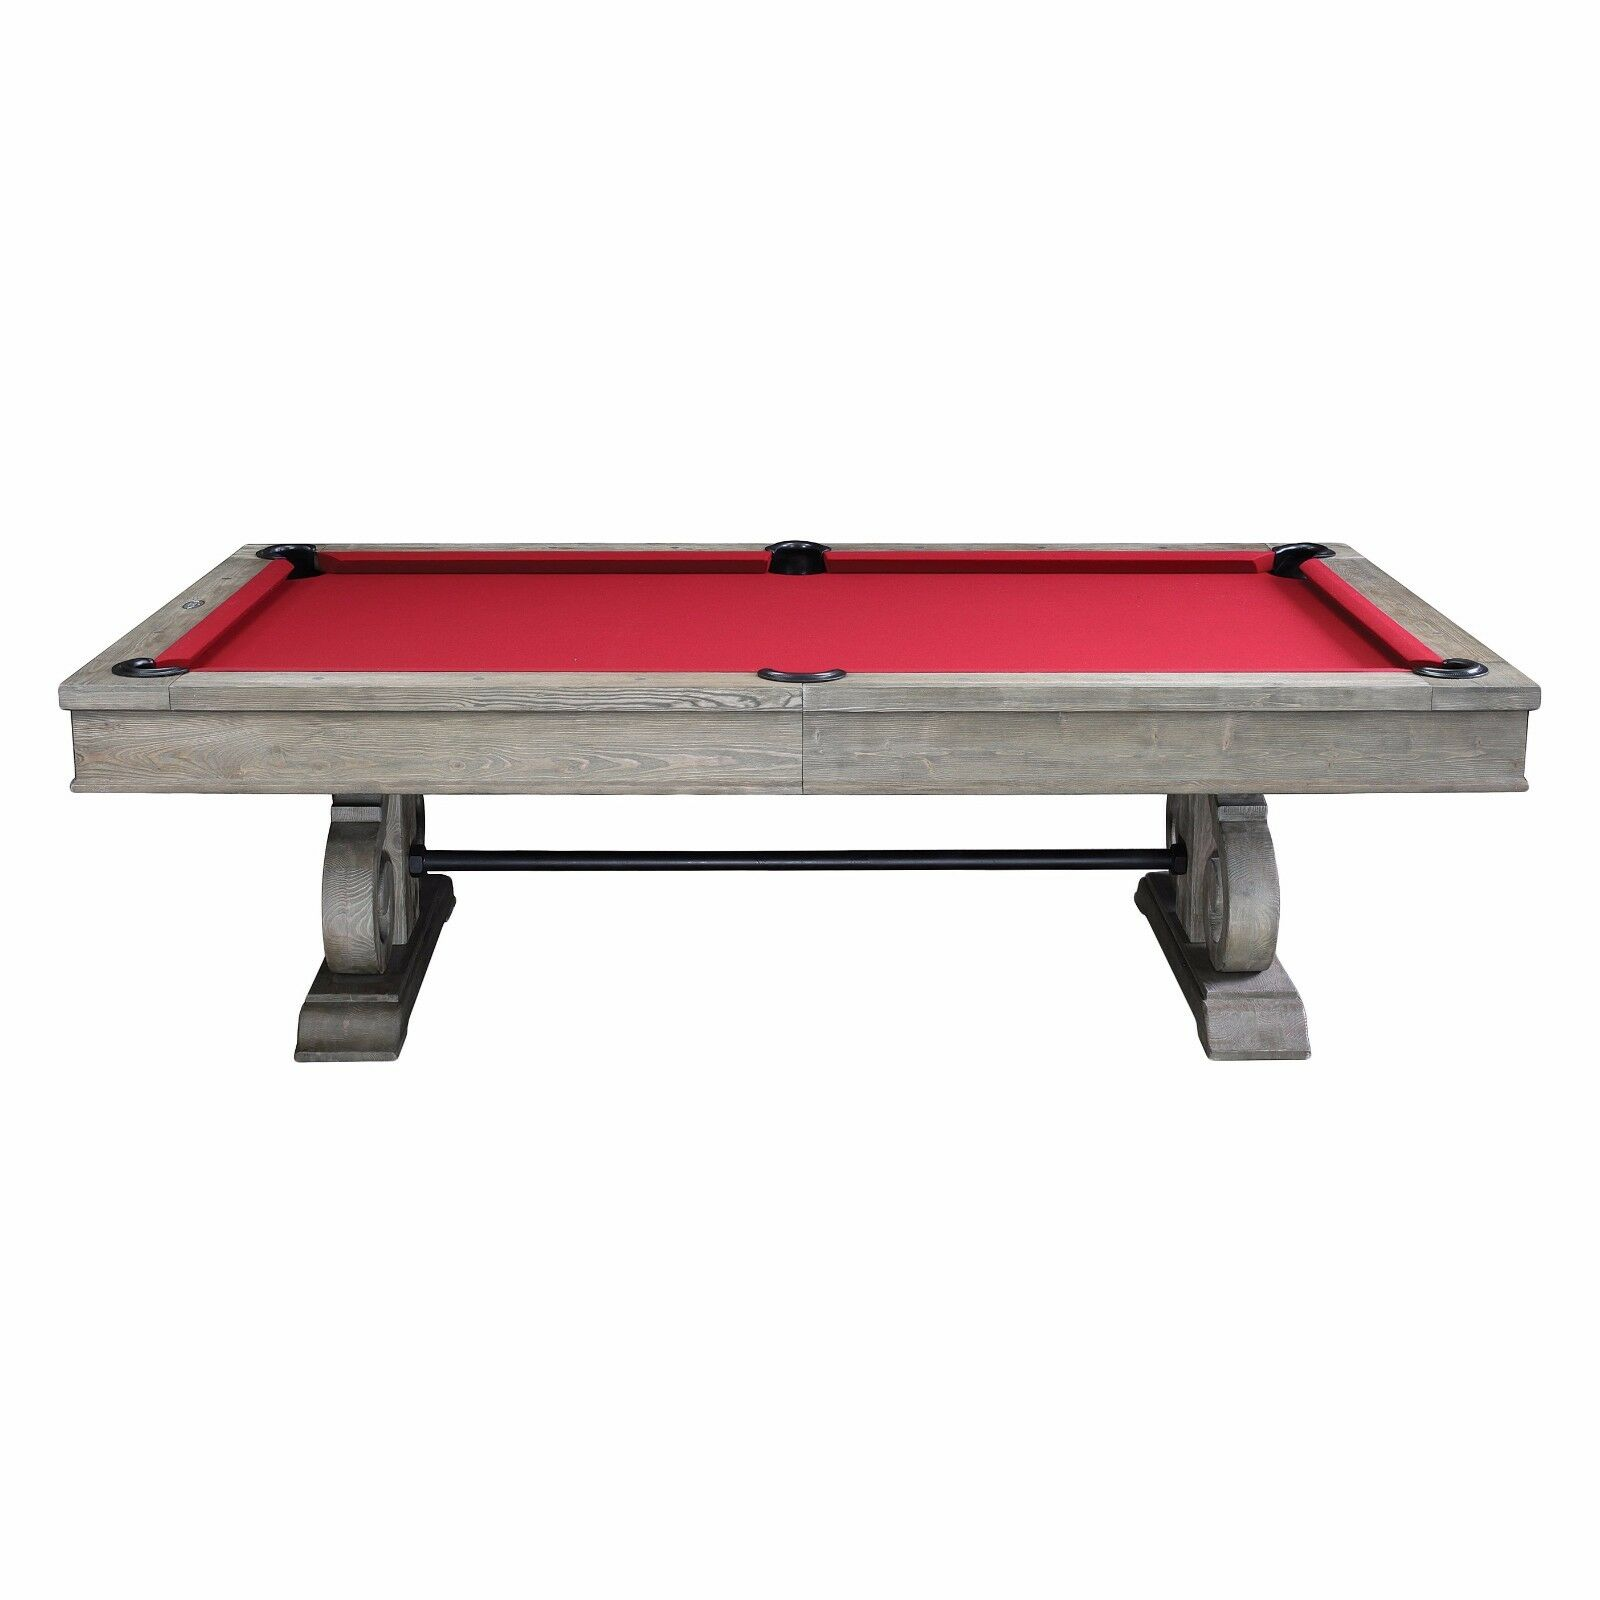 8' Barnstable Slate Pool Table w/ Weathered Oak Finish - Dining Top Included